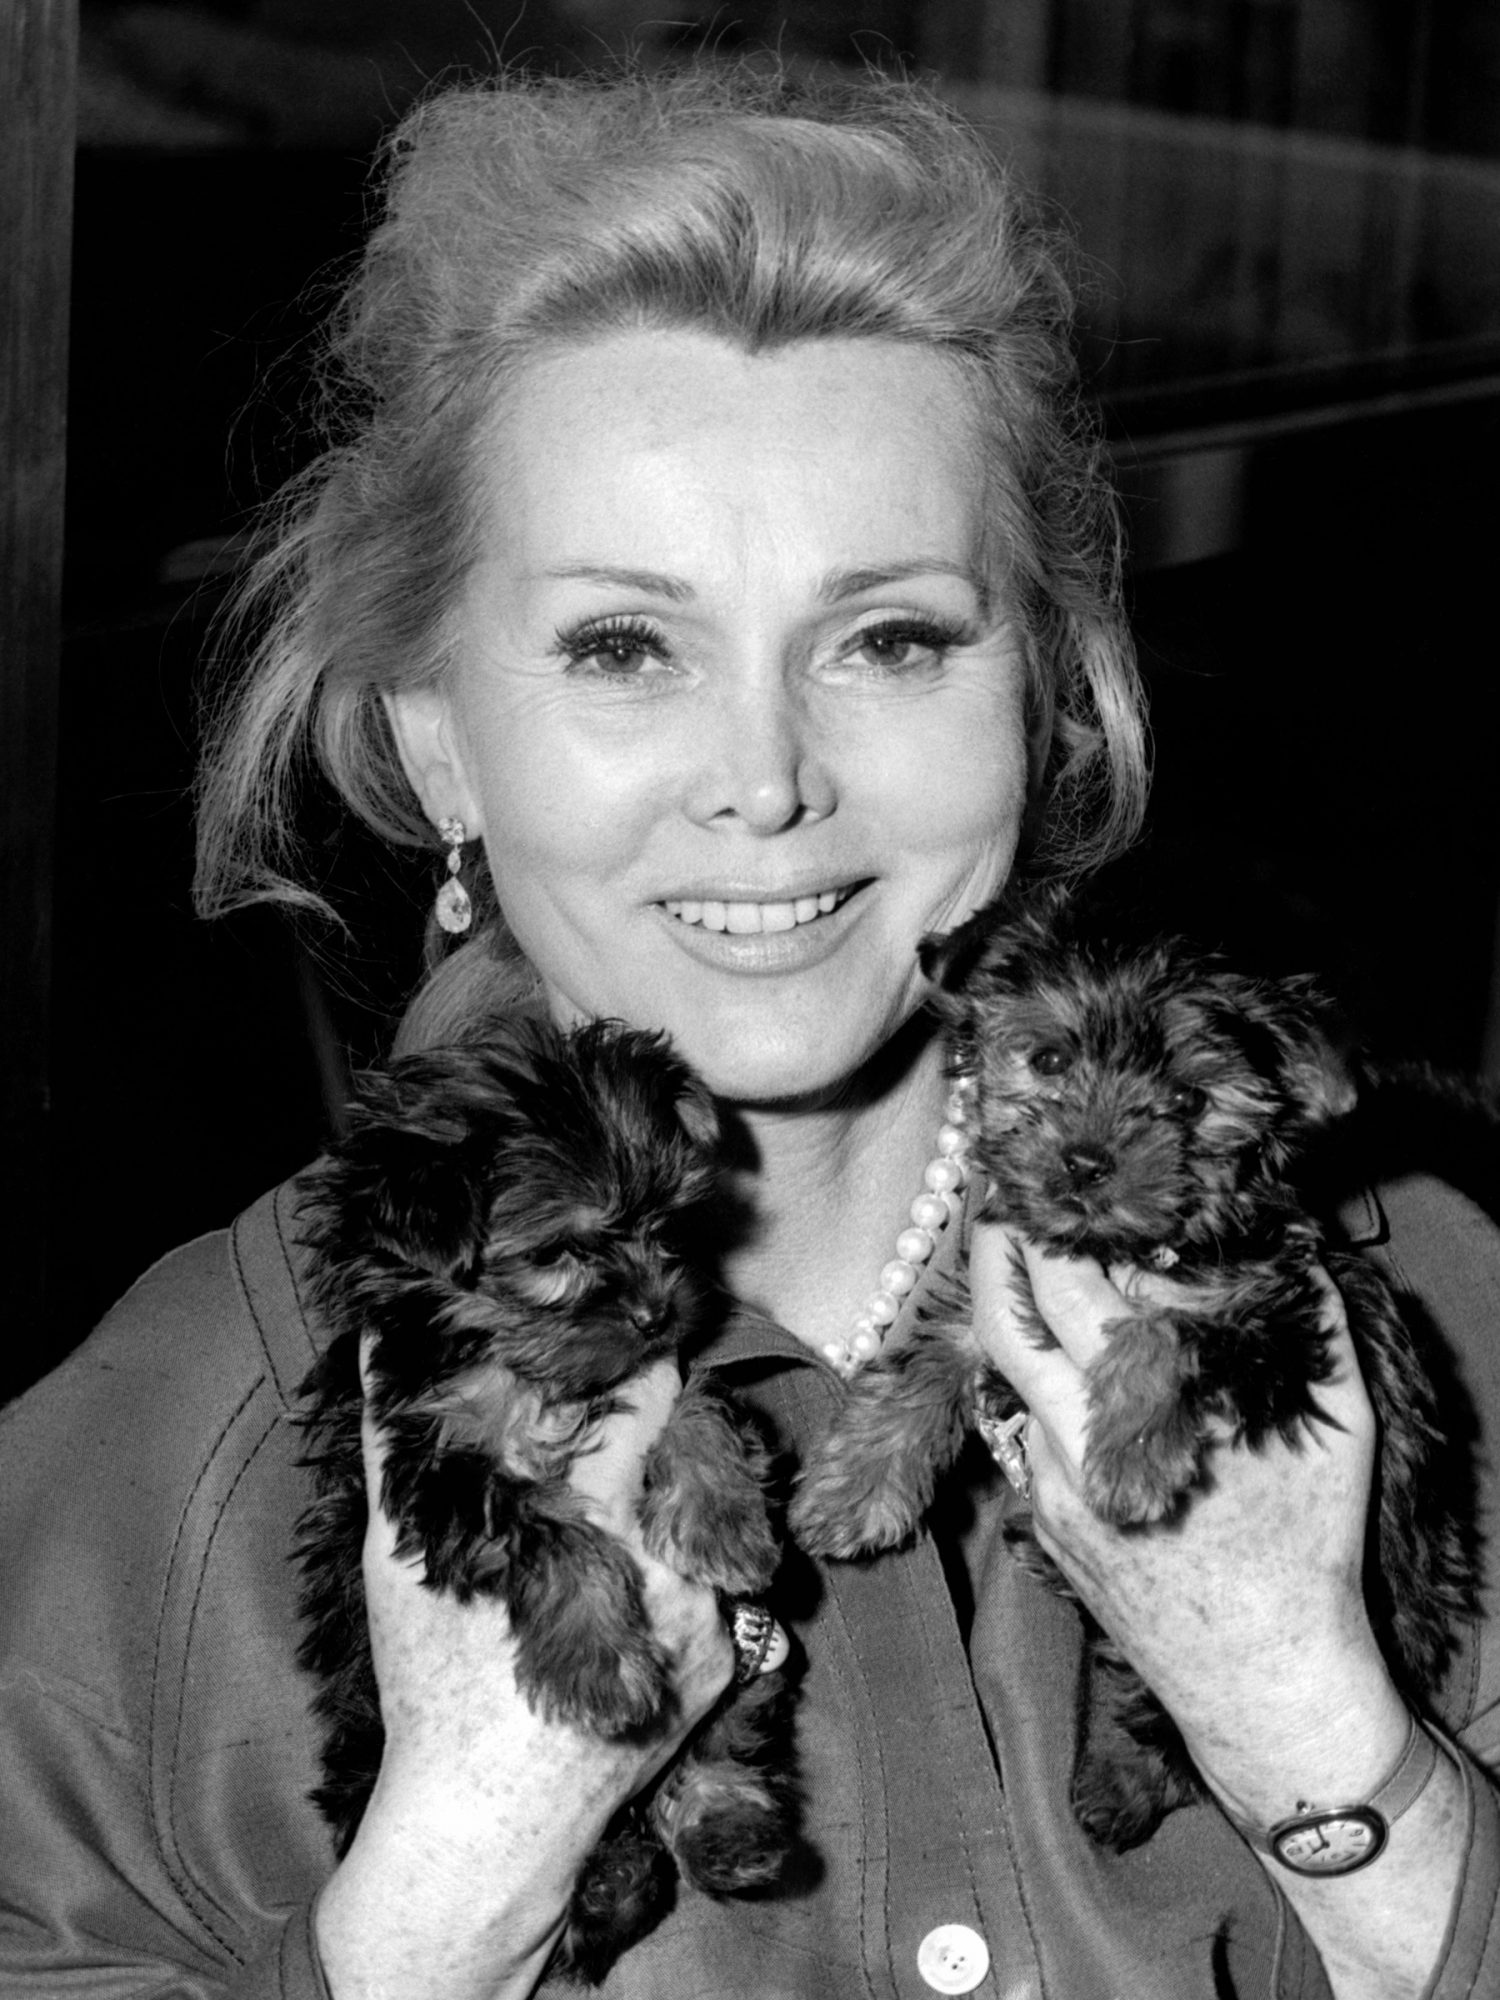 Zsa Zsa Gabor cuddling with her two terriers, Zsa Zsa and Eva Super-Duper, 1968